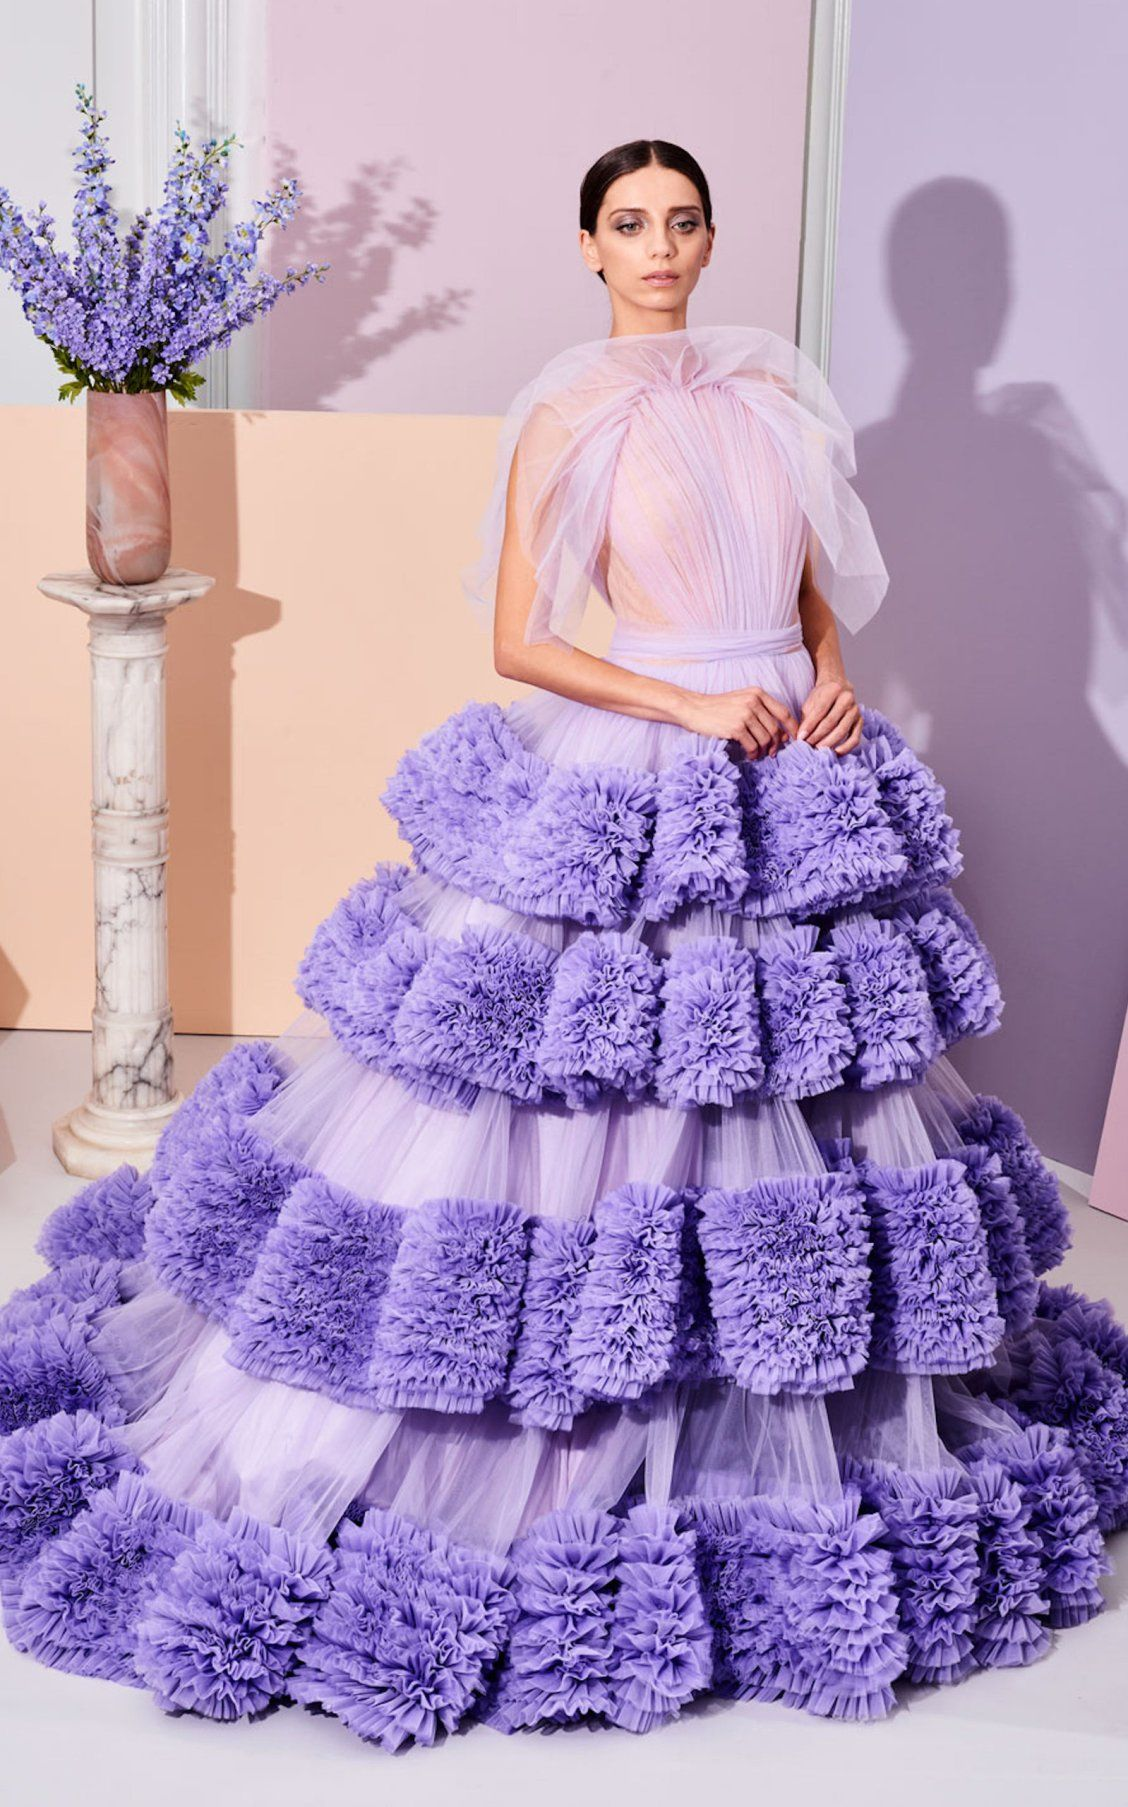 Tiered Rushed Tulle Ball Gown With Draped Bodice By Christian Siriano Pf19 Moda Operandi Ball Gowns Gowns Fashion